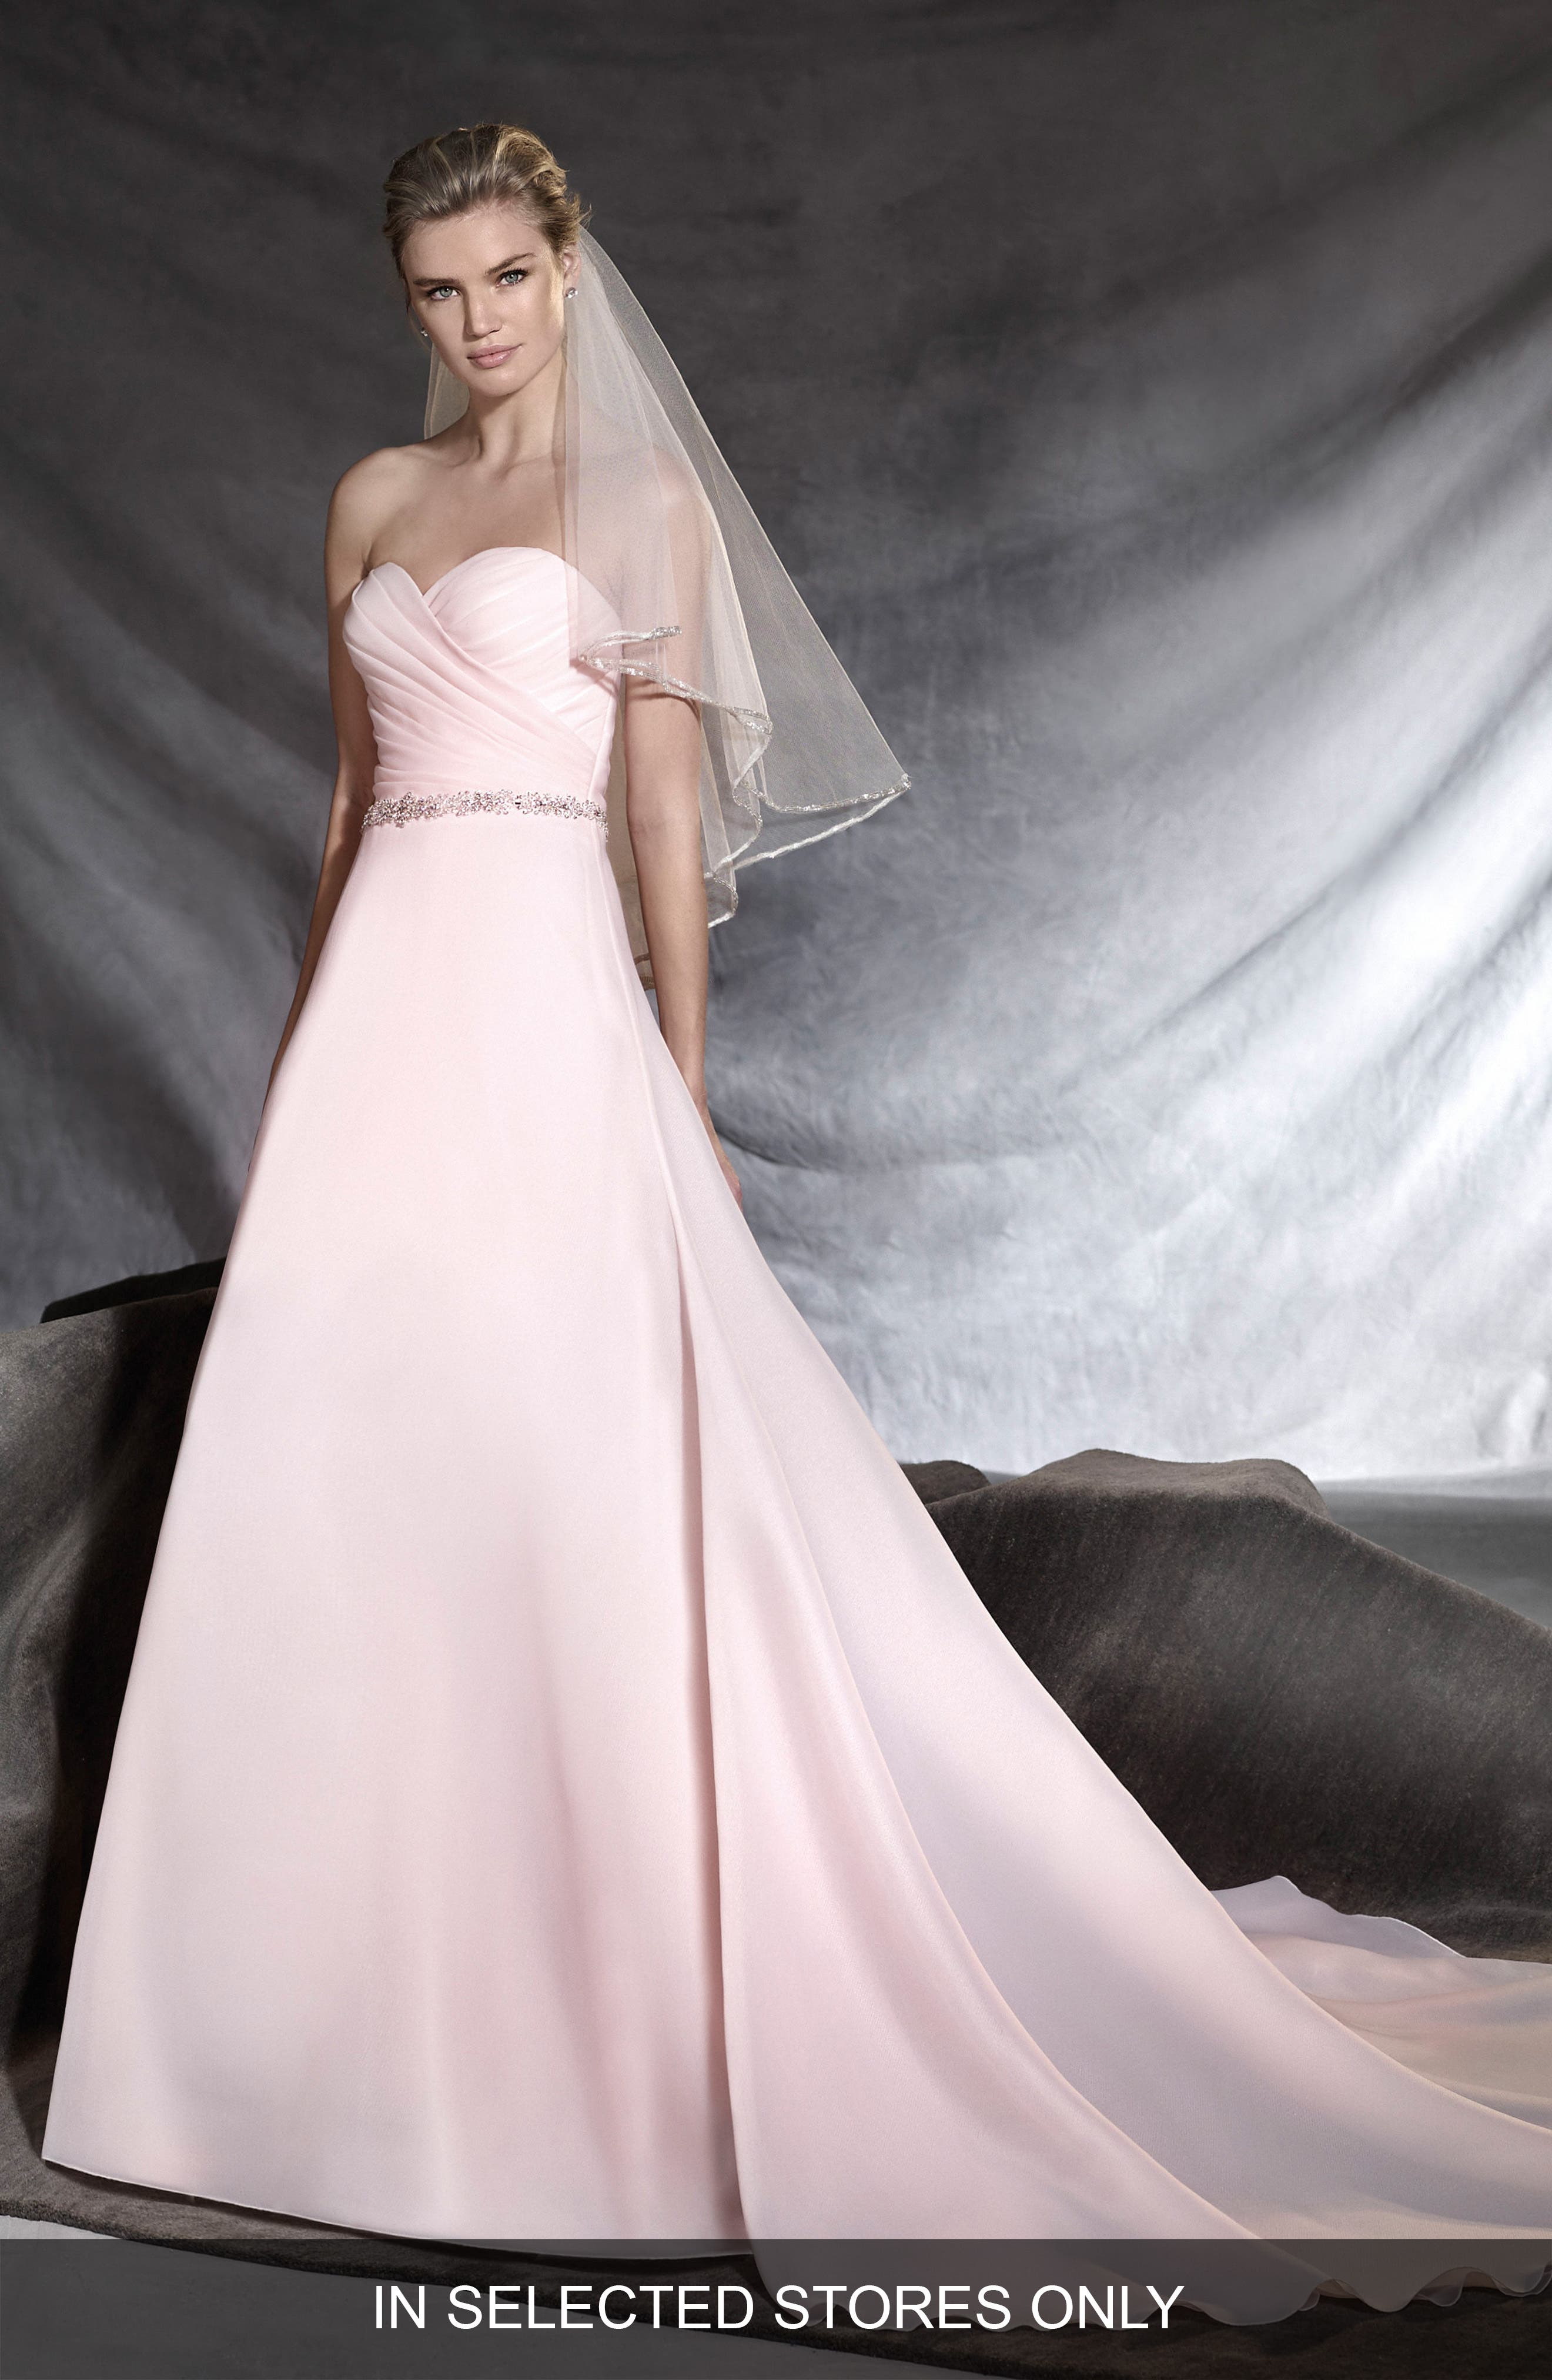 Ortuella Strapless Chiffon A-Line Gown,                             Main thumbnail 1, color,                             650